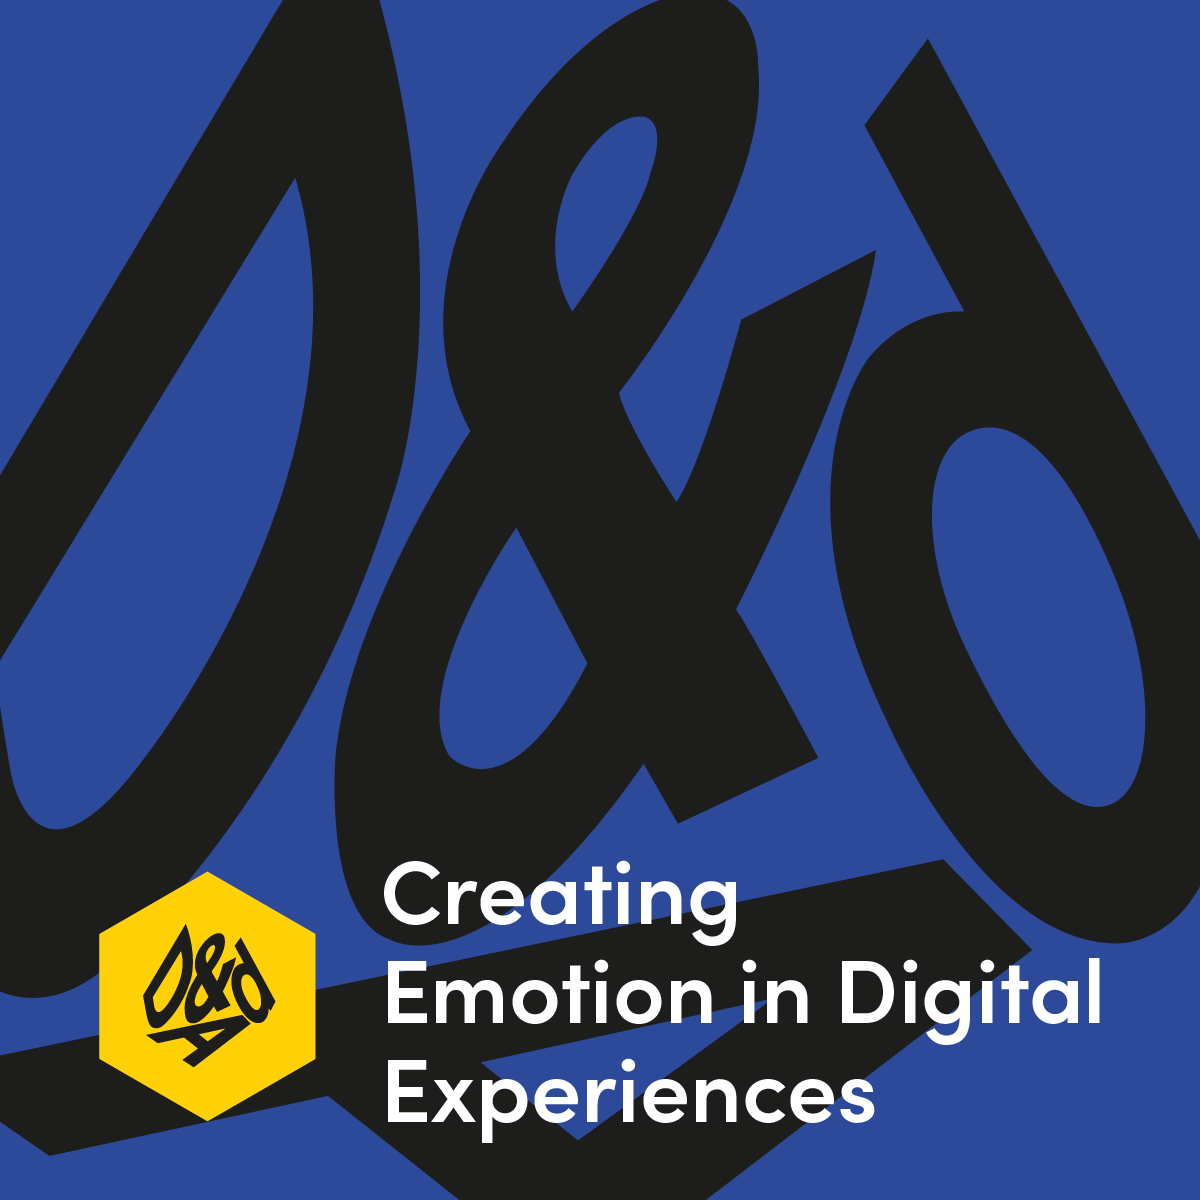 Creating Emotion in Digital Experiences - Friday 8th November 9.30am - 5.30pmD&AD, Cheshire StreetLondon, UK